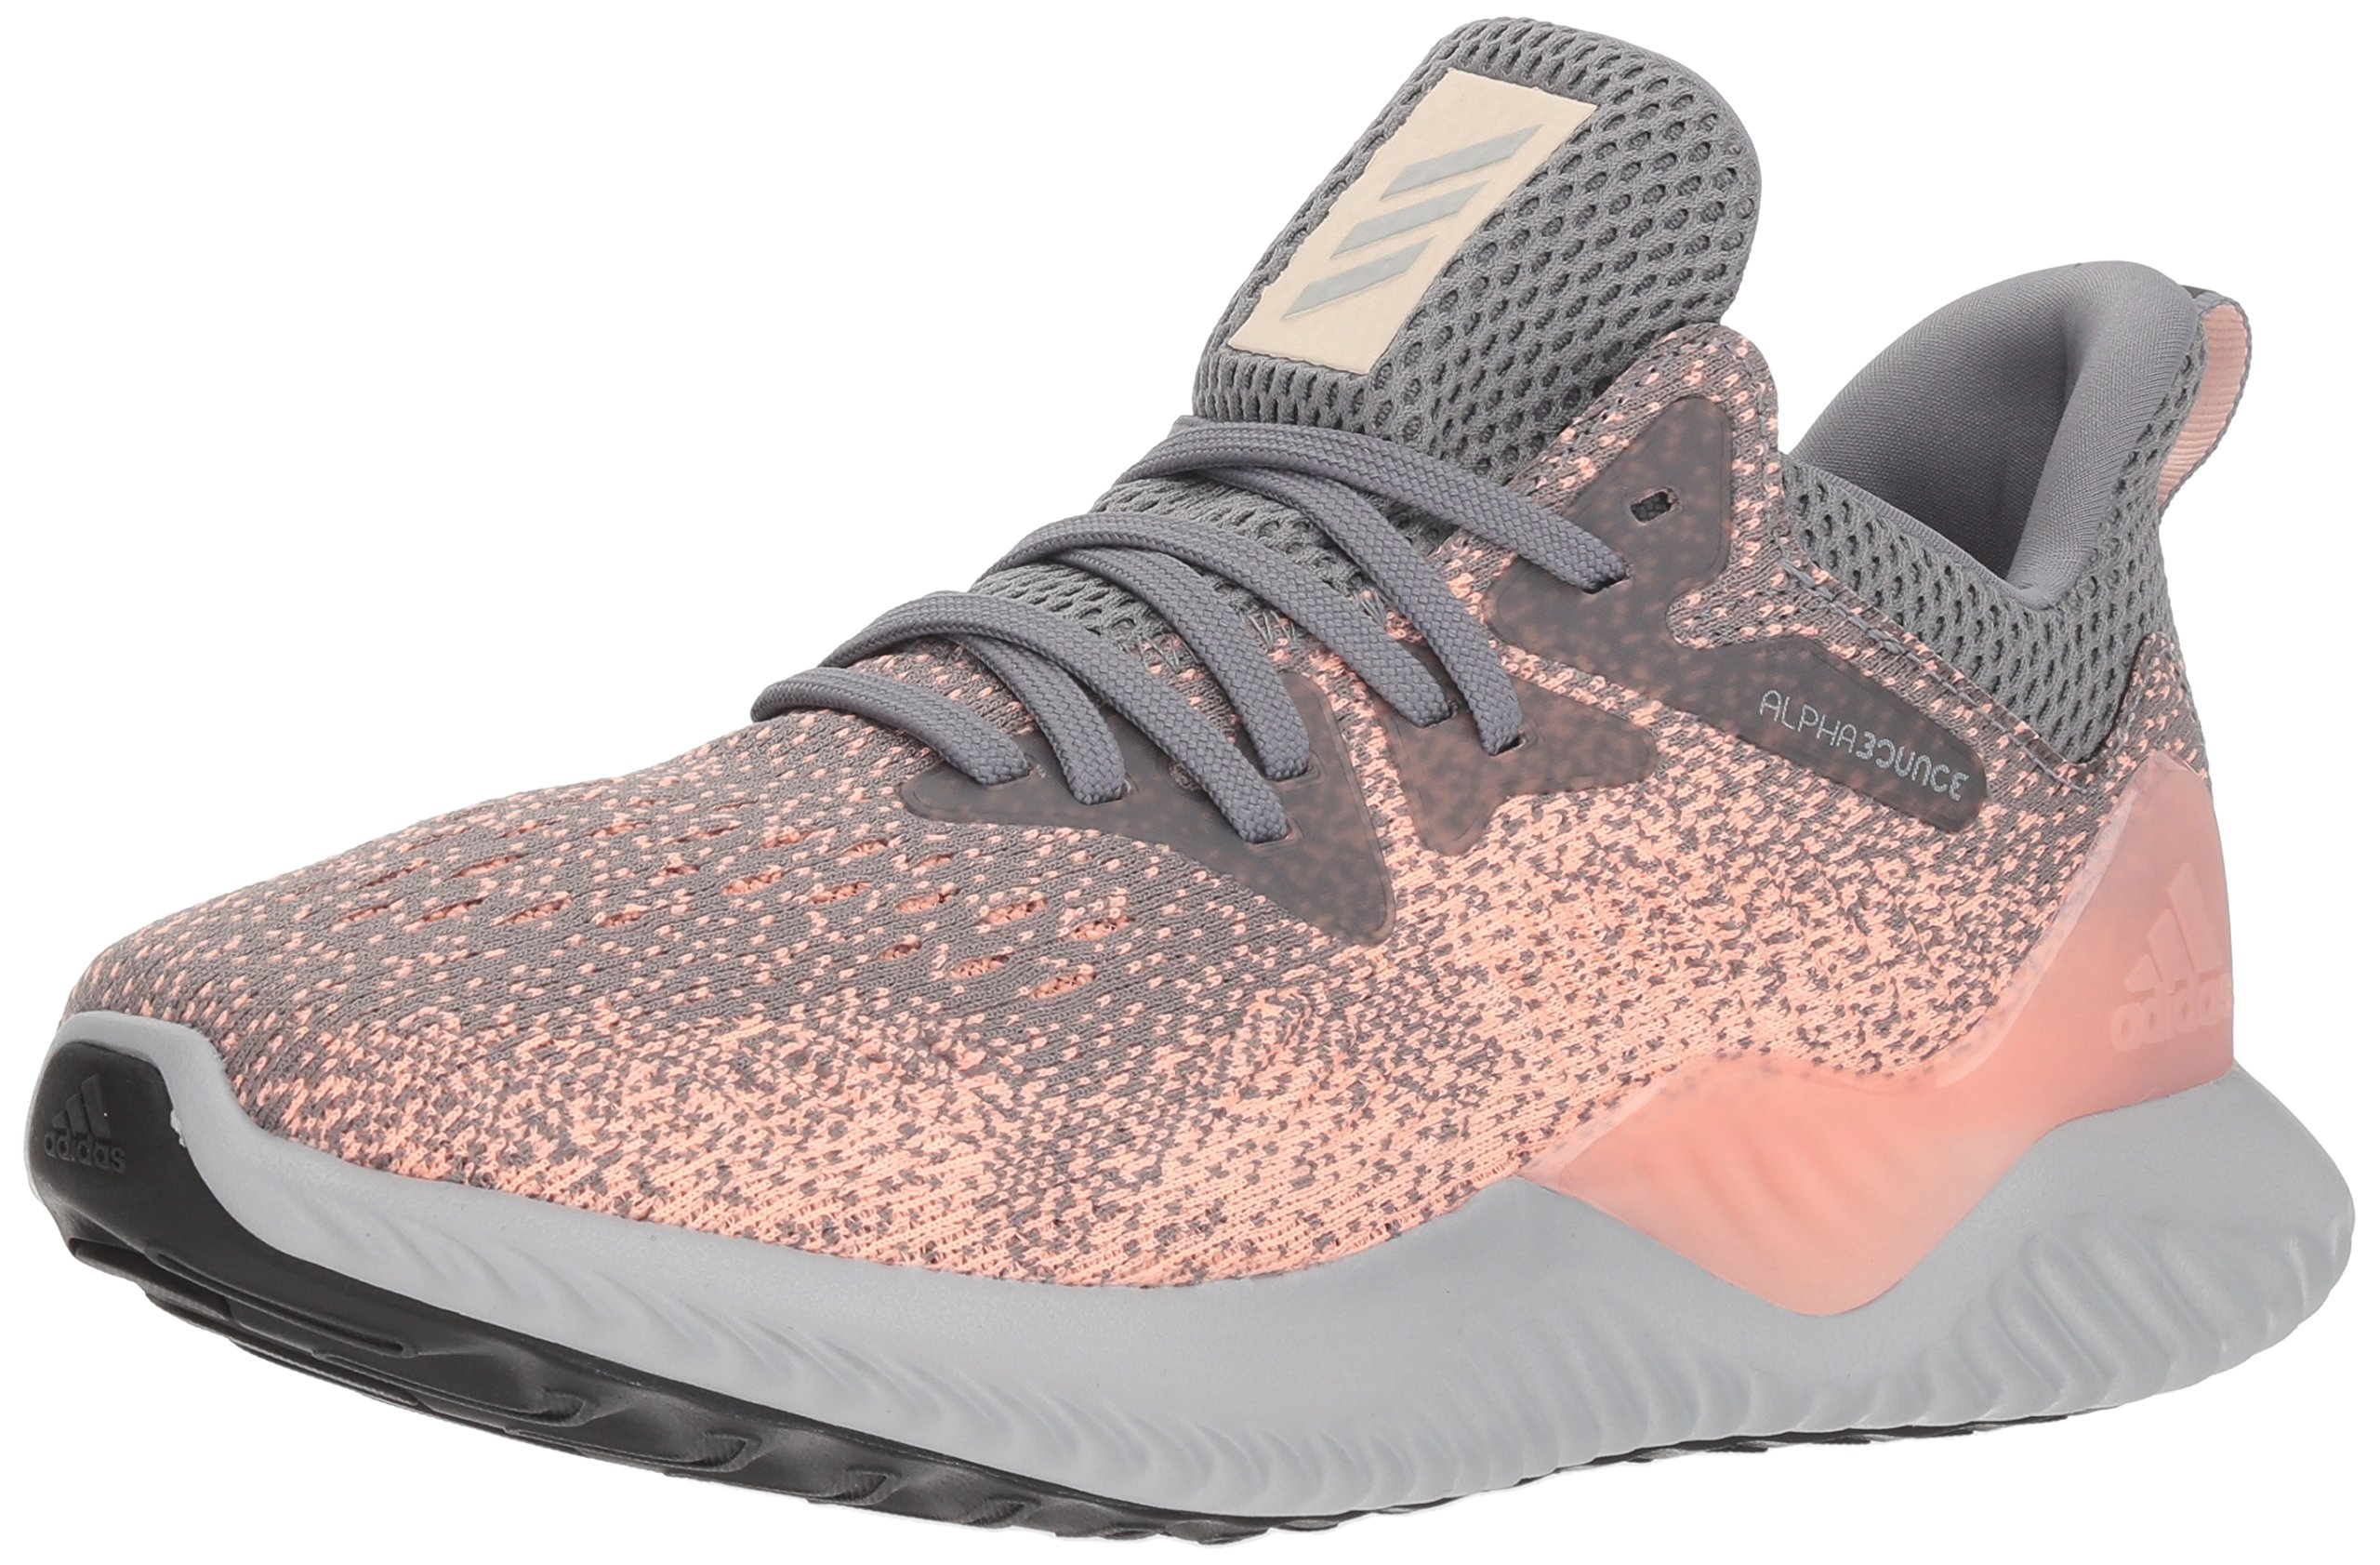 adidas Women's Alphabounce Beyond Running Shoe GreyClear Orange, 10 M US